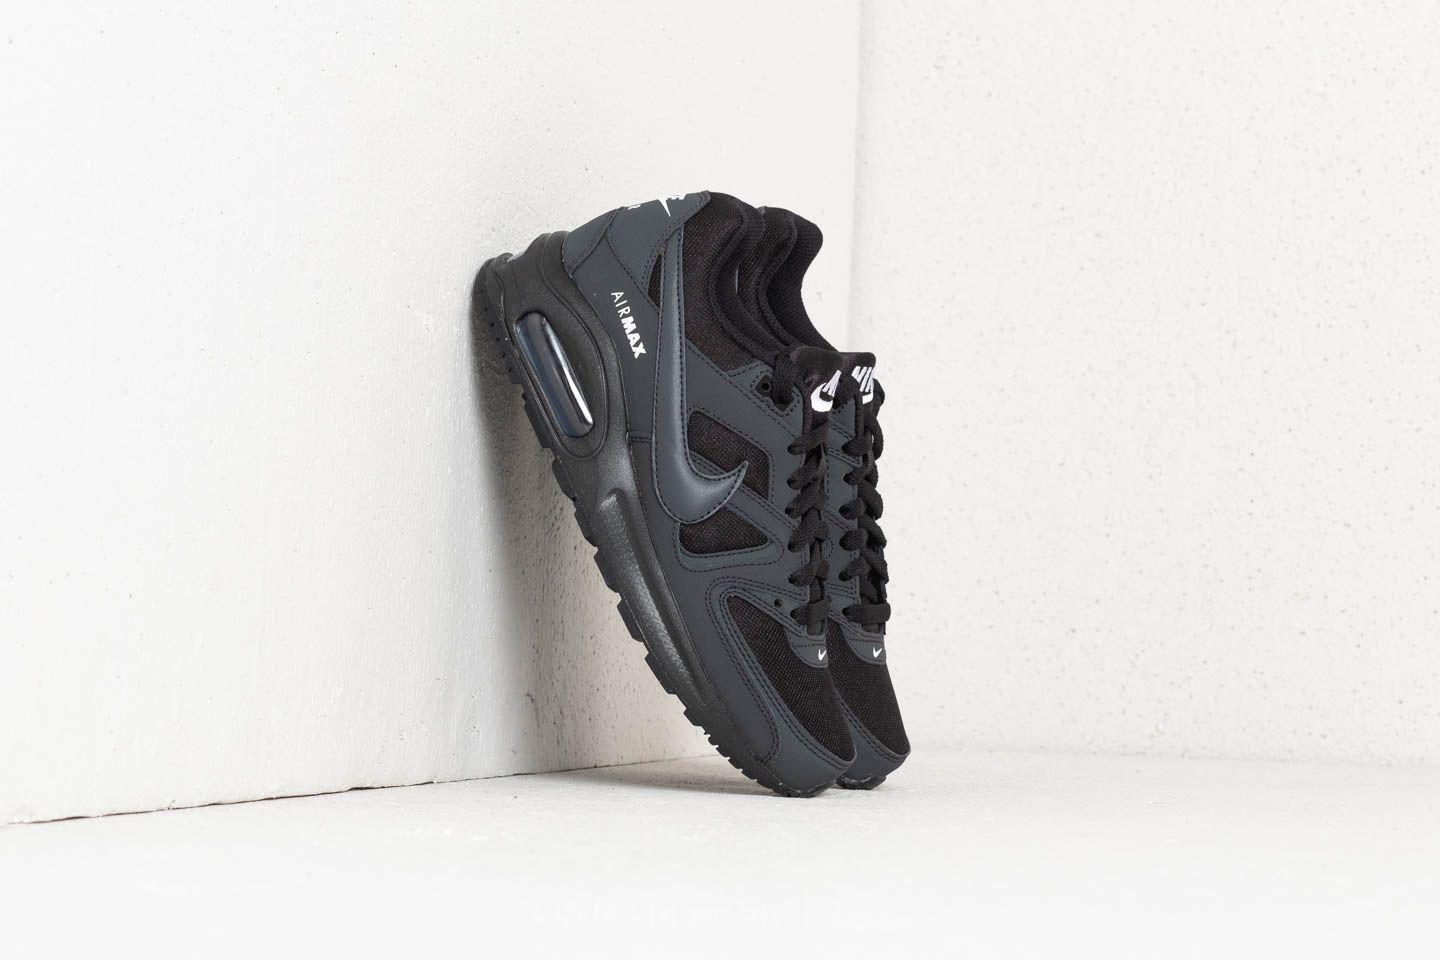 Lyst - Nike Air Max Command Flex (gs) Black  Anthracite-white in Black f5d164cb74d